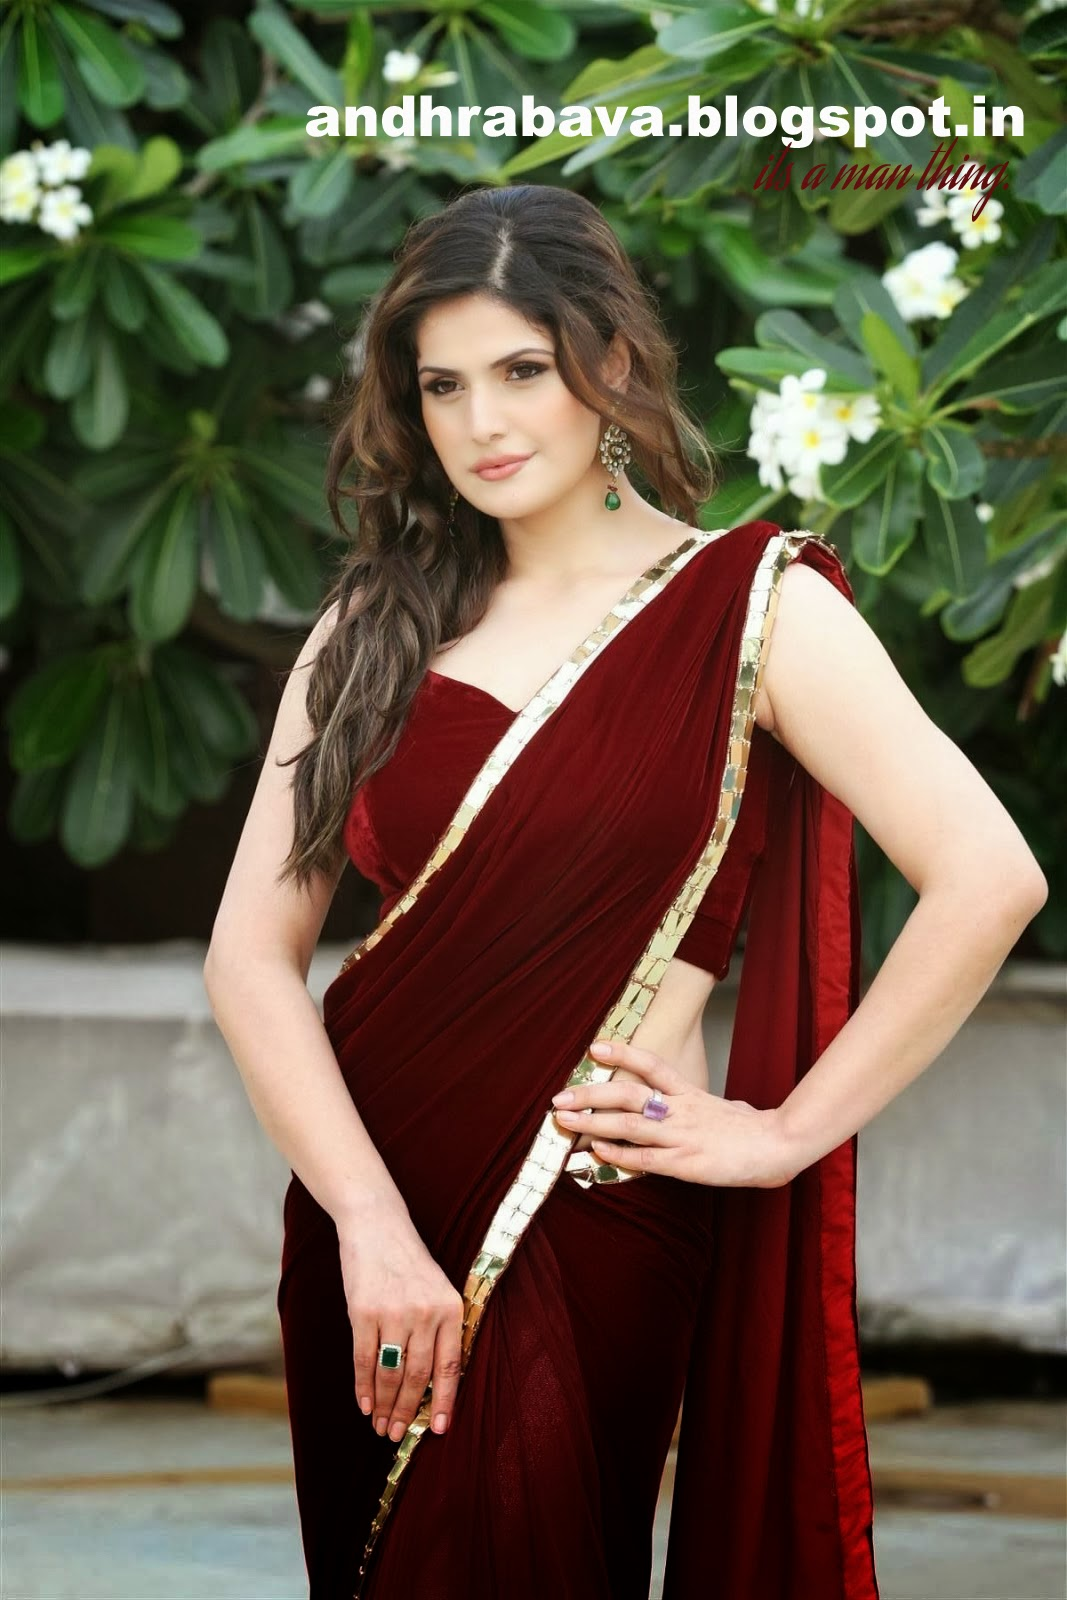 ACTRESS HOT IMAGES: SEXY IN SAREE